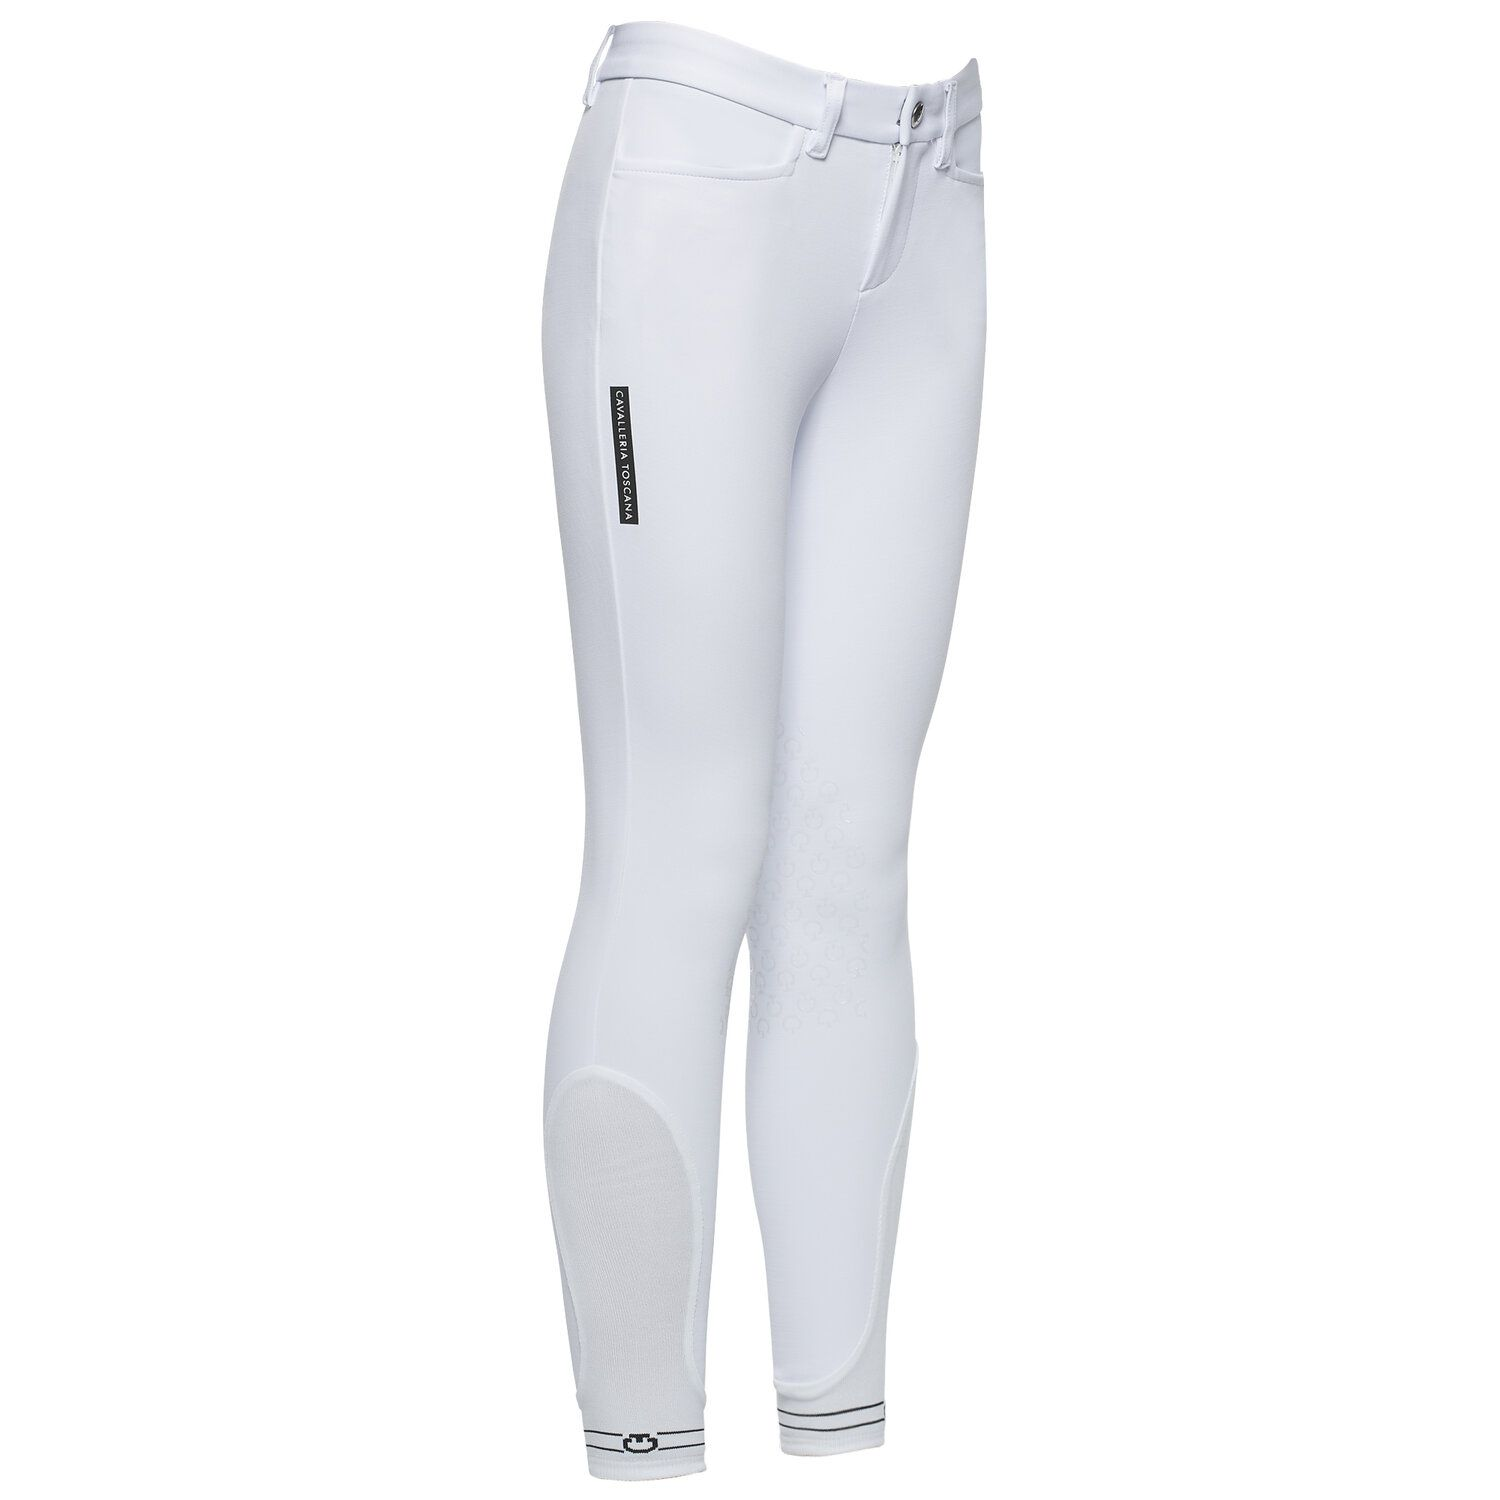 Kid's knee grip breeches with perforated logo tape